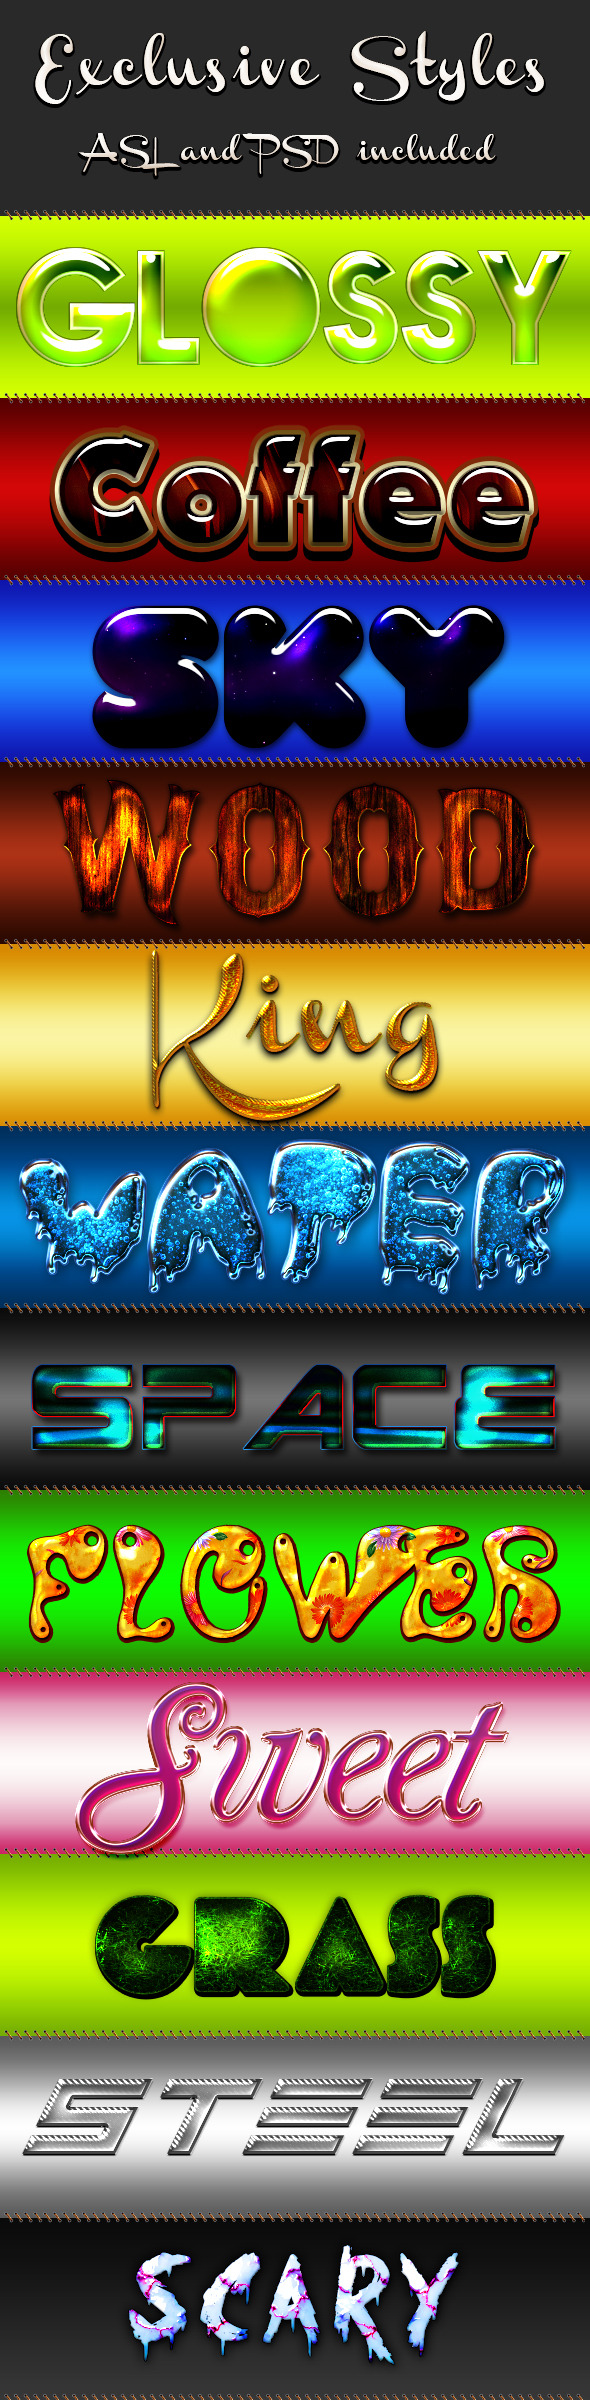 Exclusive Styles - Text Effects Styles